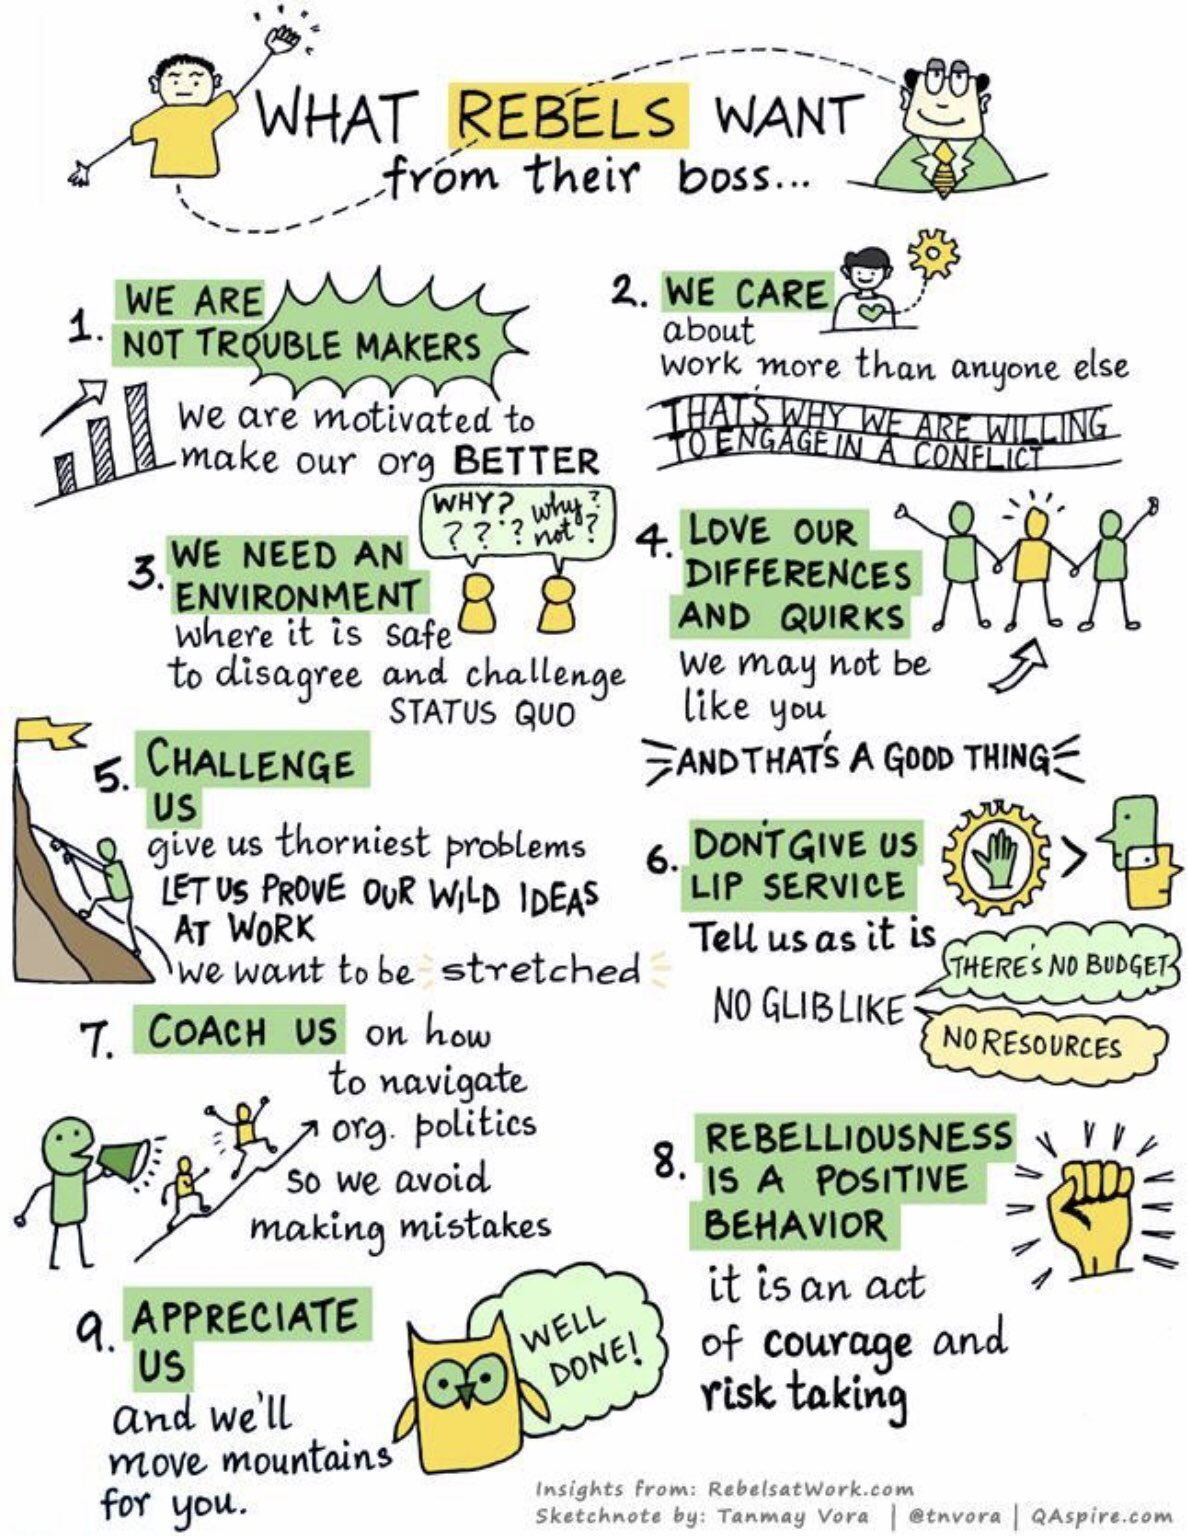 Just the truth and nothing but the truth 💗@tnvora thanks for this!💗#rebelsatwork https://t.co/AEQTLU136k